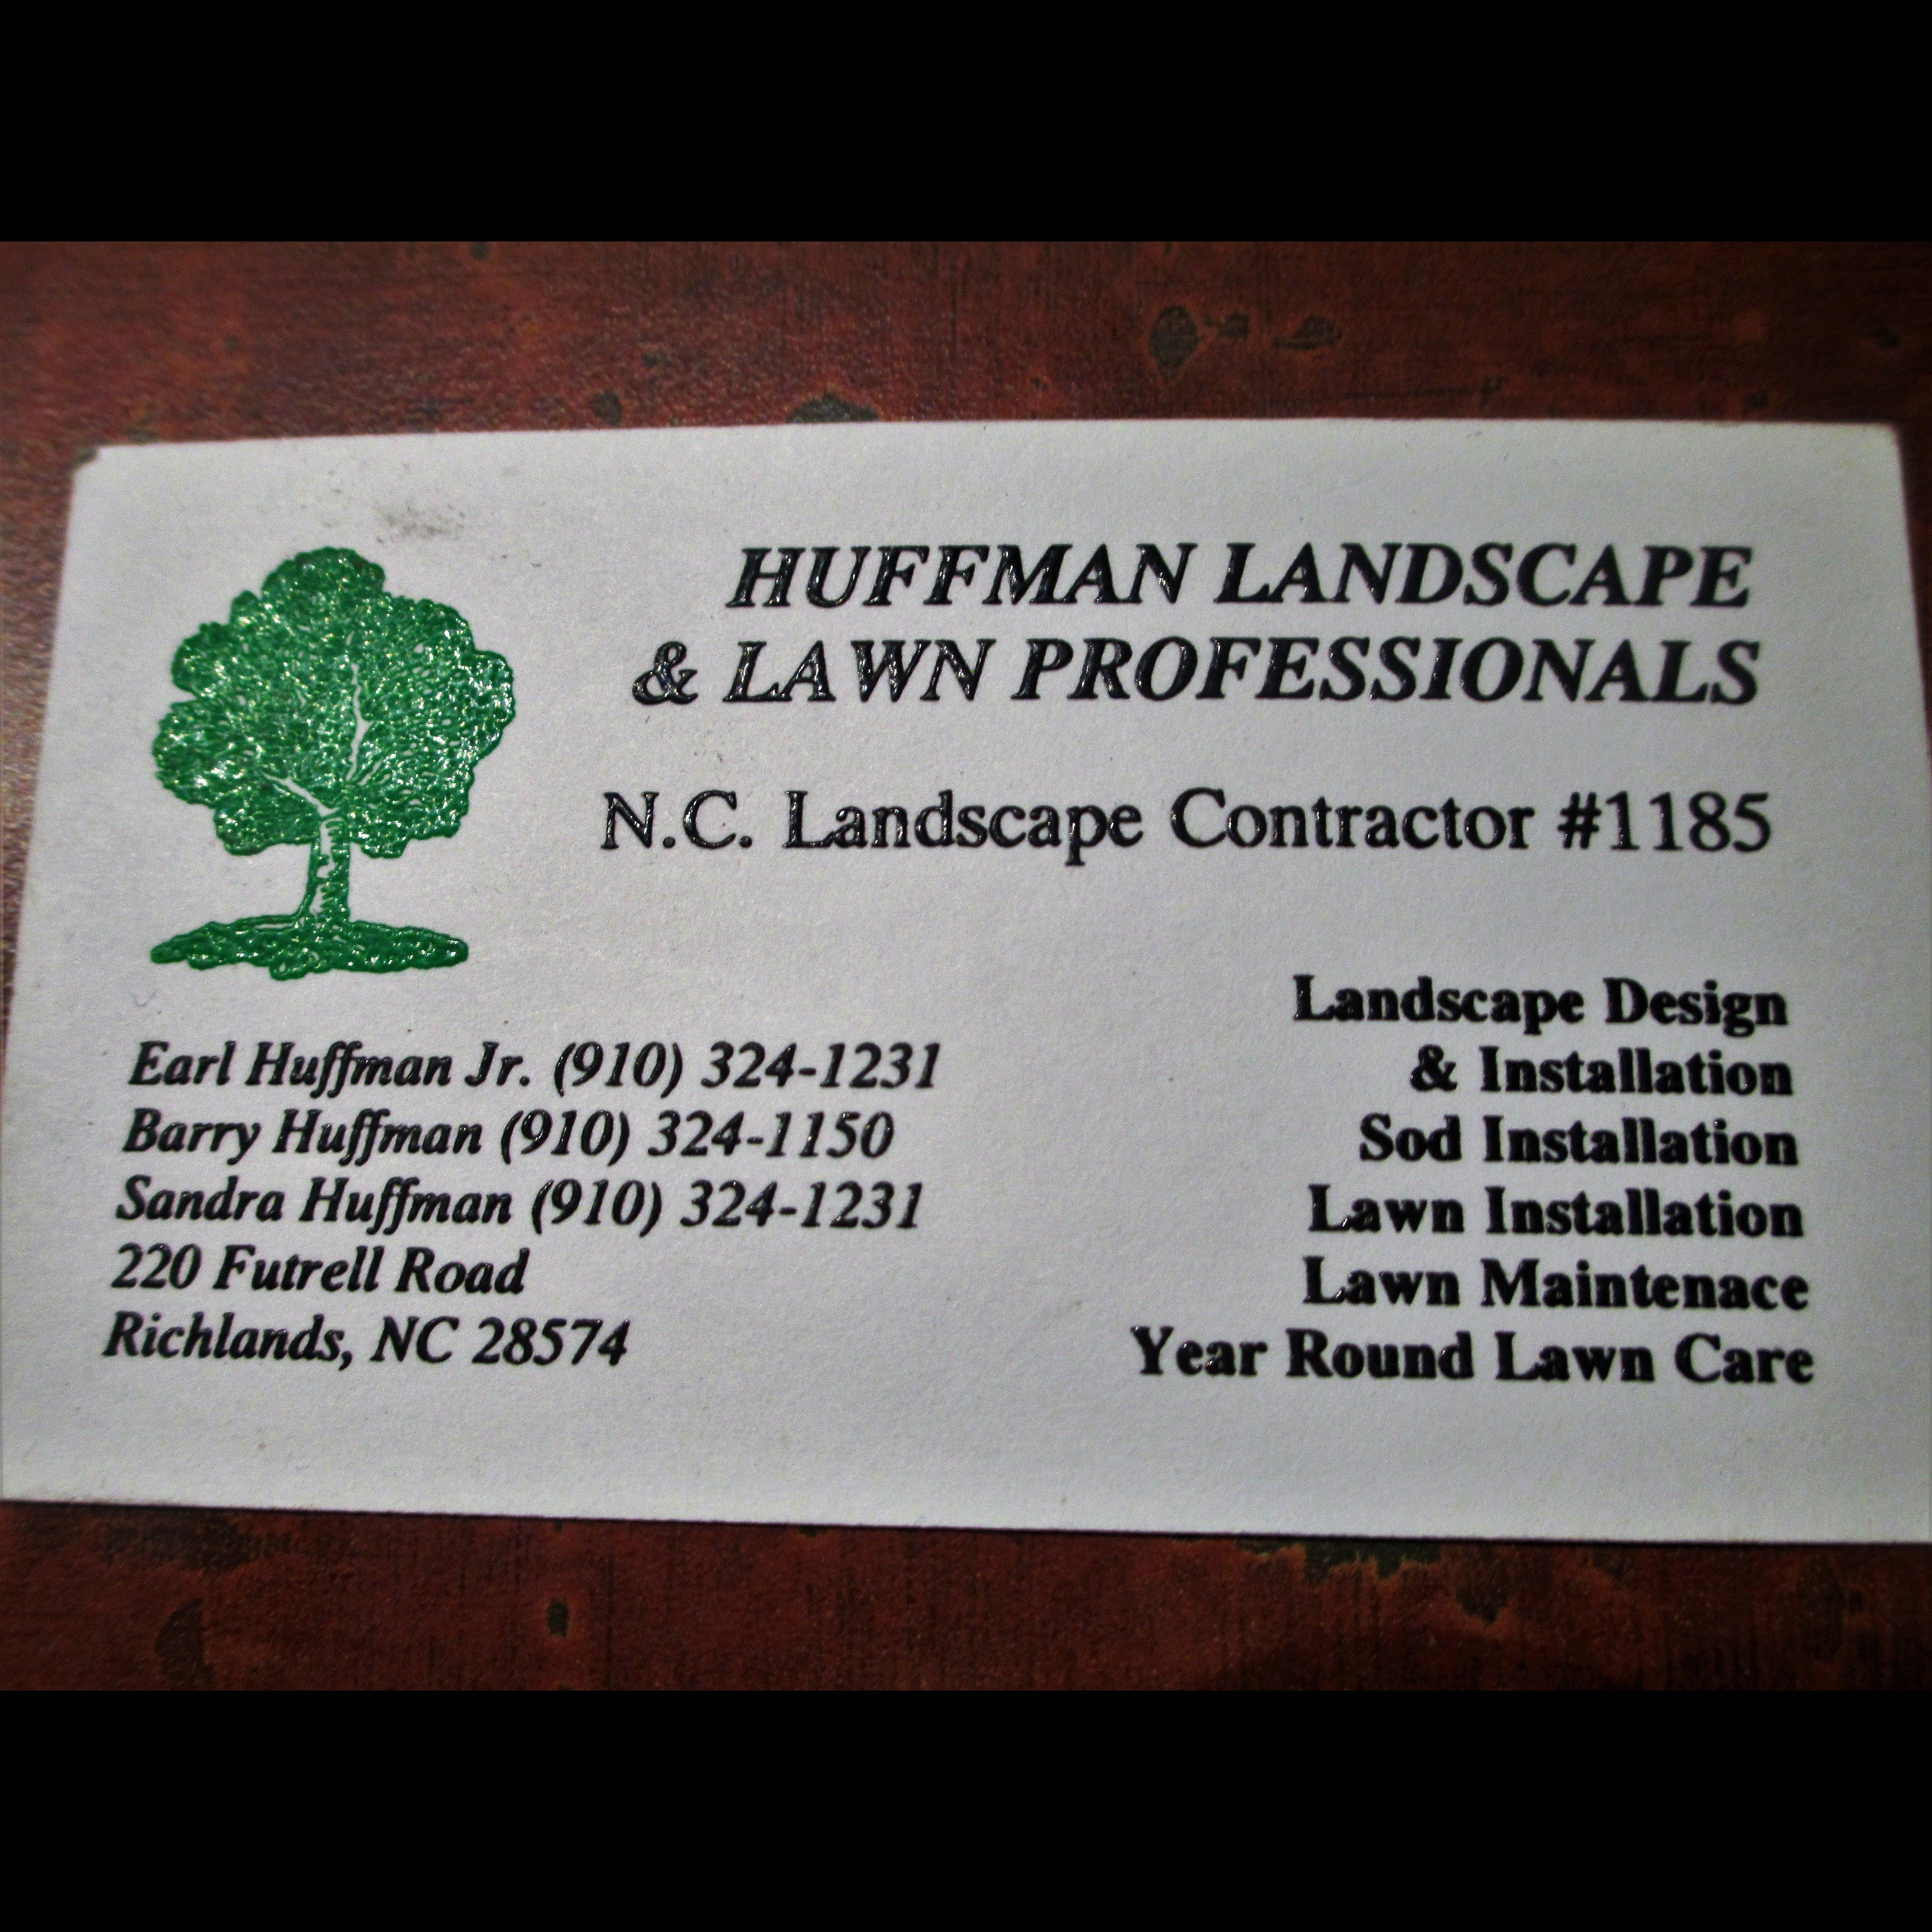 Huffman Landscaping and Lawn Professionals